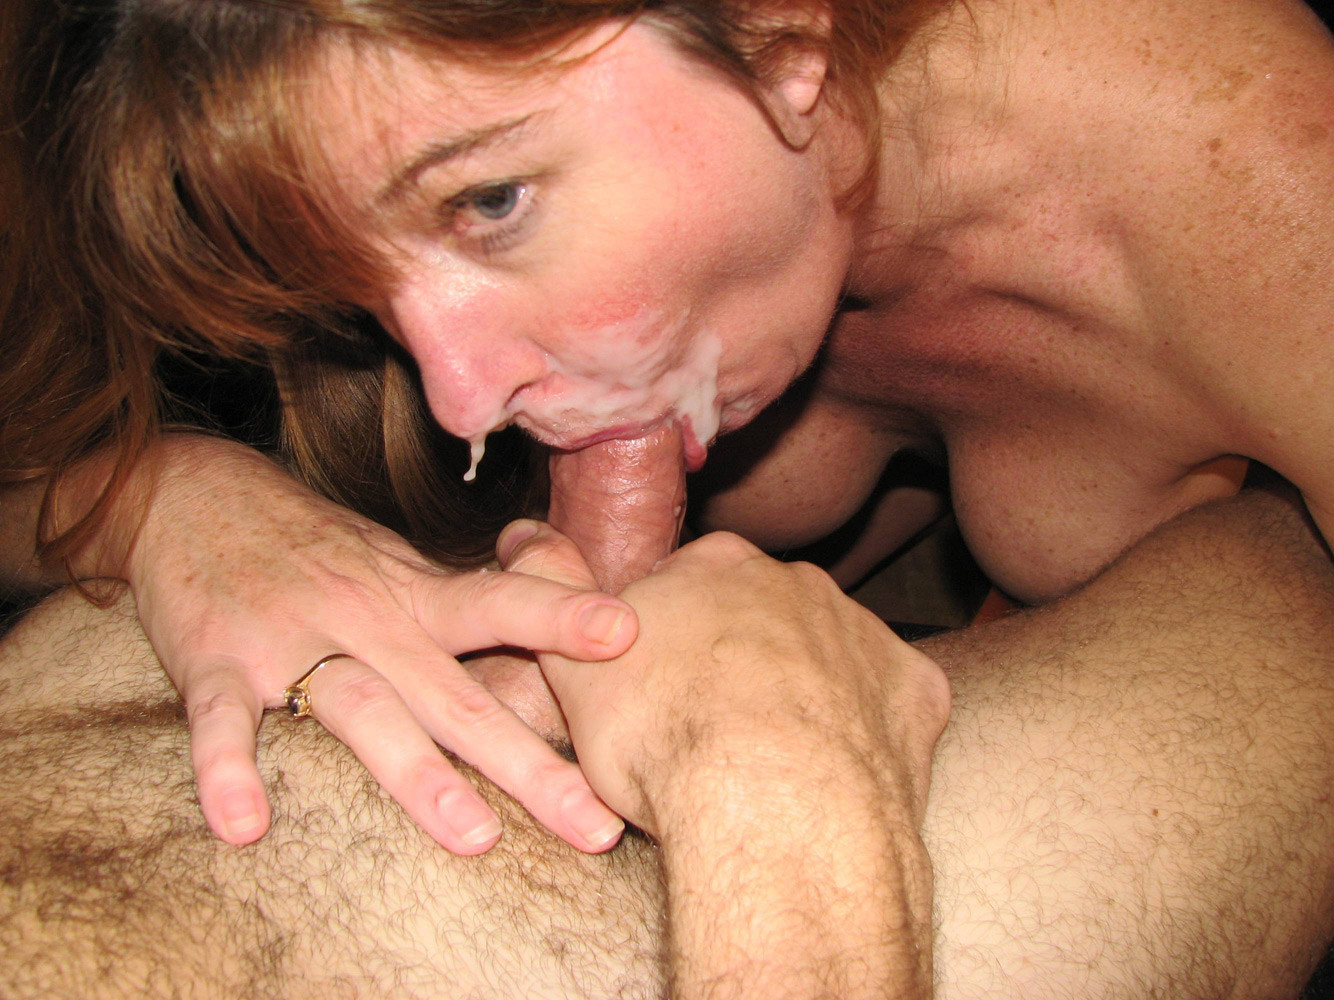 amatuer-mature-mom-son-videos-young-girl-fuck-from-pakistani